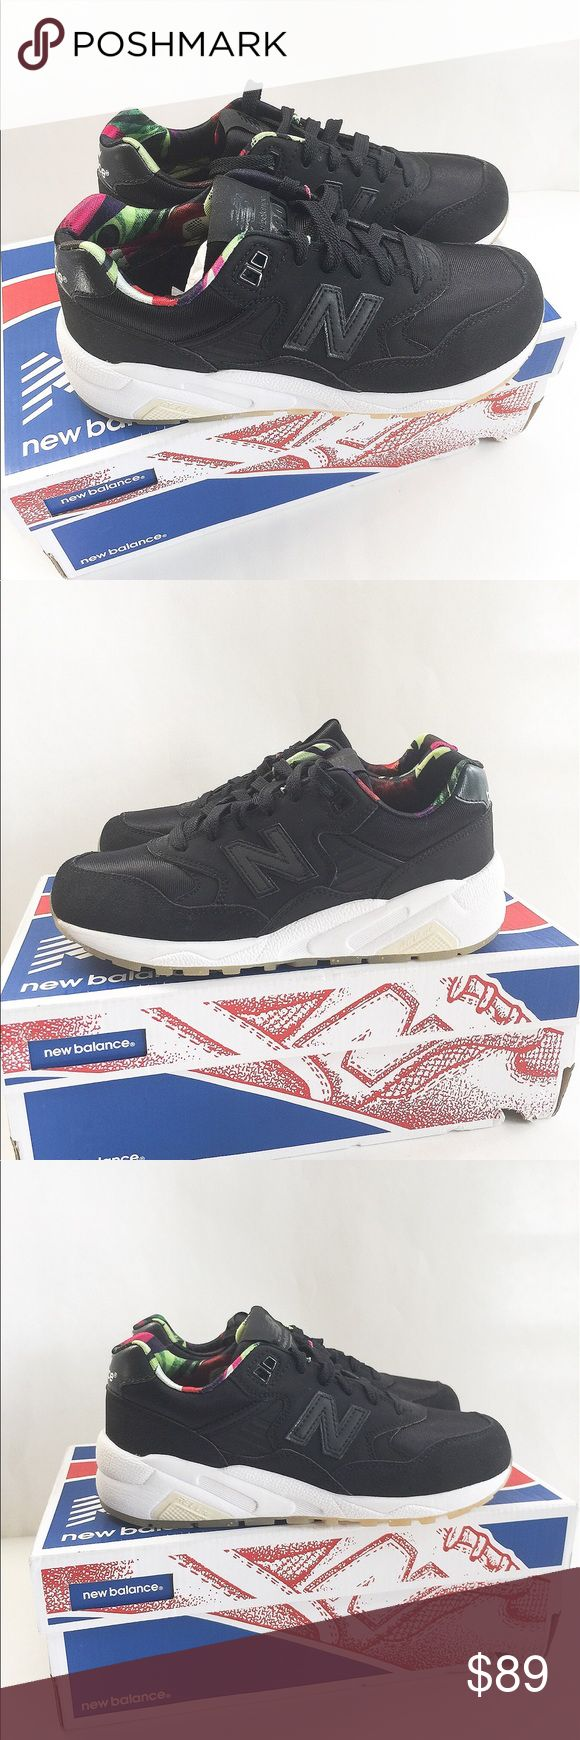 new balance 993 sizing